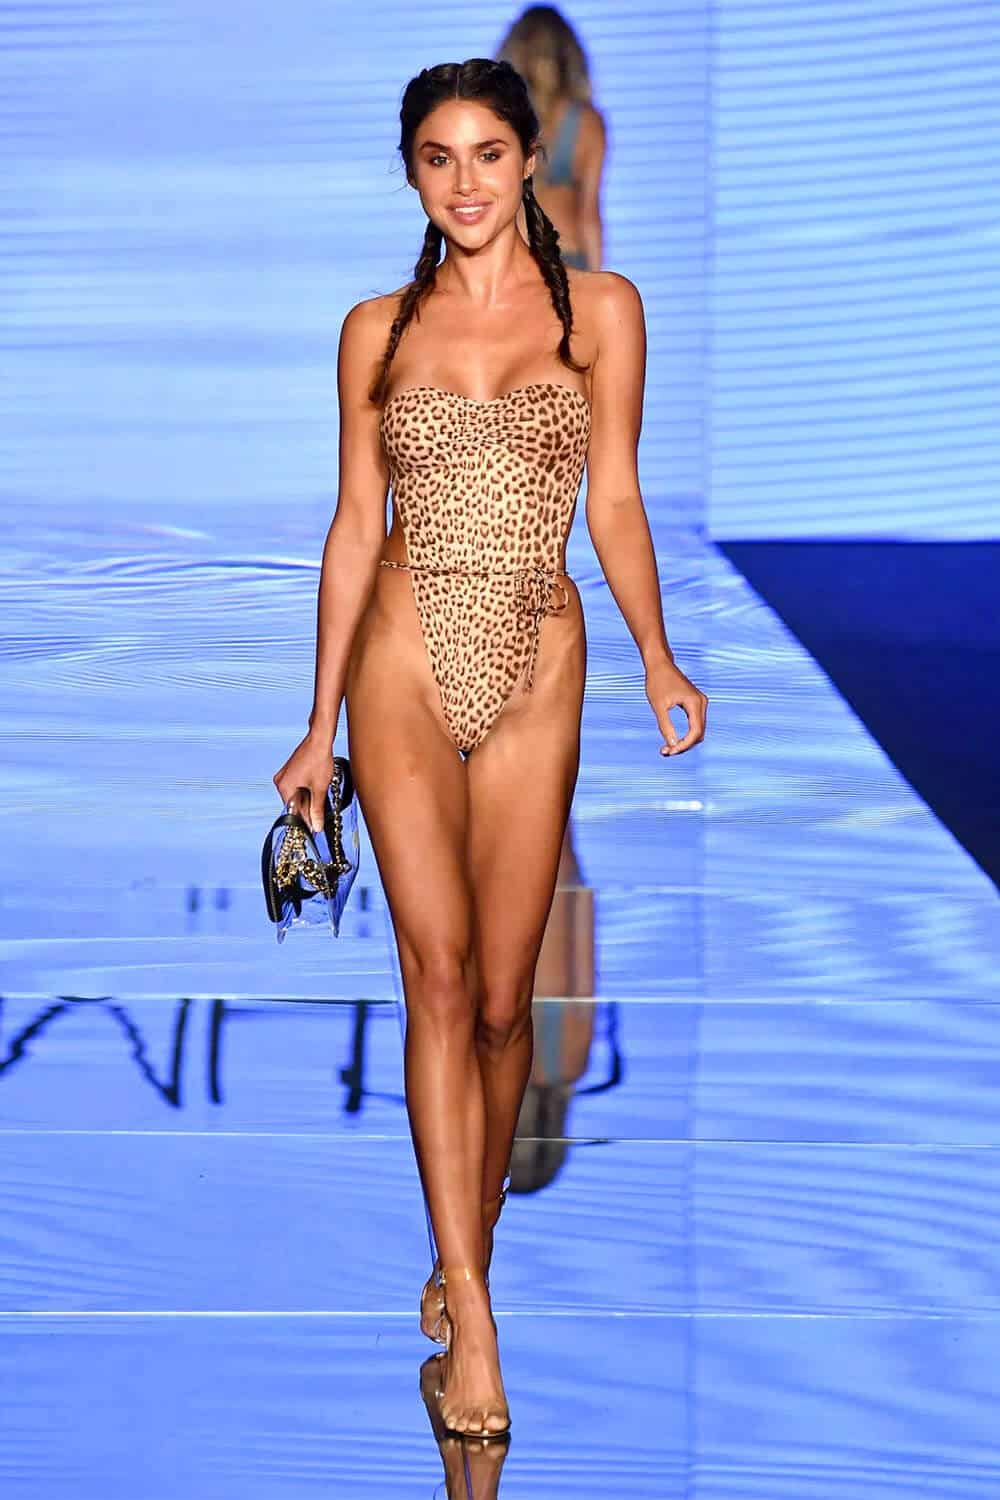 Womens Swimsuits 2021: Marvelous Trends And Ideas For Bathing Suits 2021